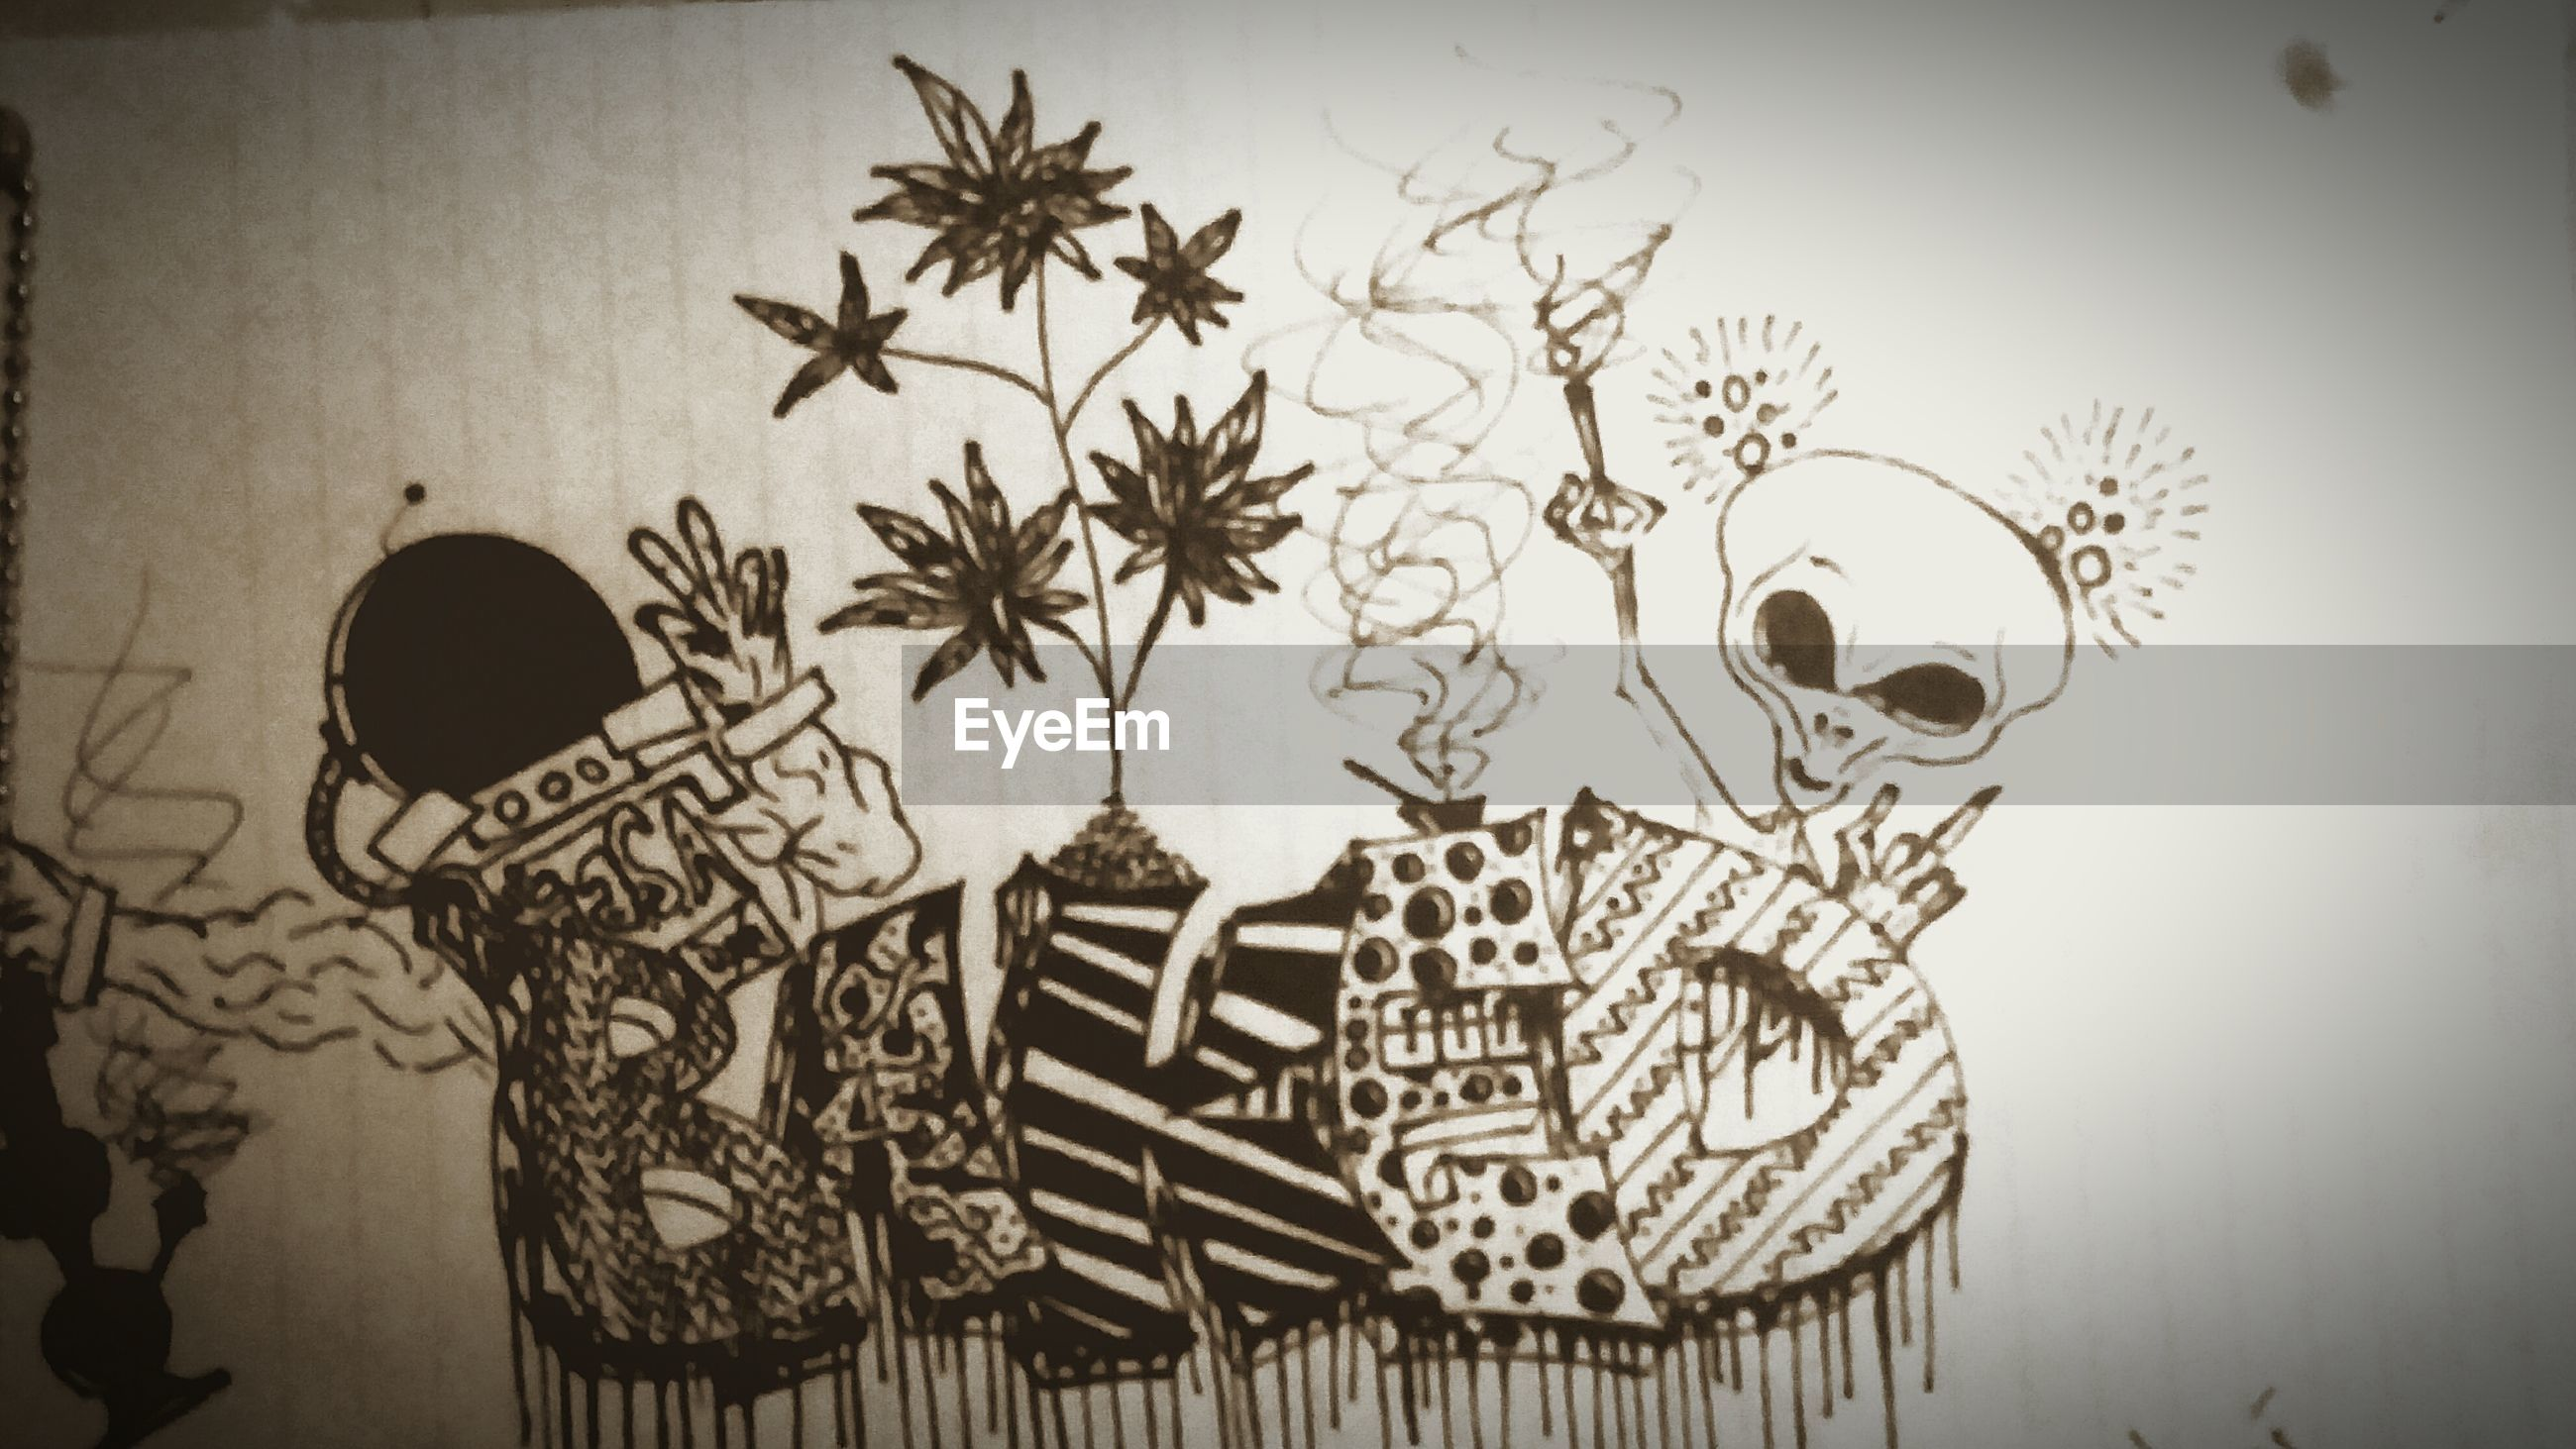 wall - building feature, art and craft, creativity, indoors, art, wall, built structure, auto post production filter, architecture, decoration, human representation, transfer print, no people, animal representation, close-up, graffiti, text, design, home interior